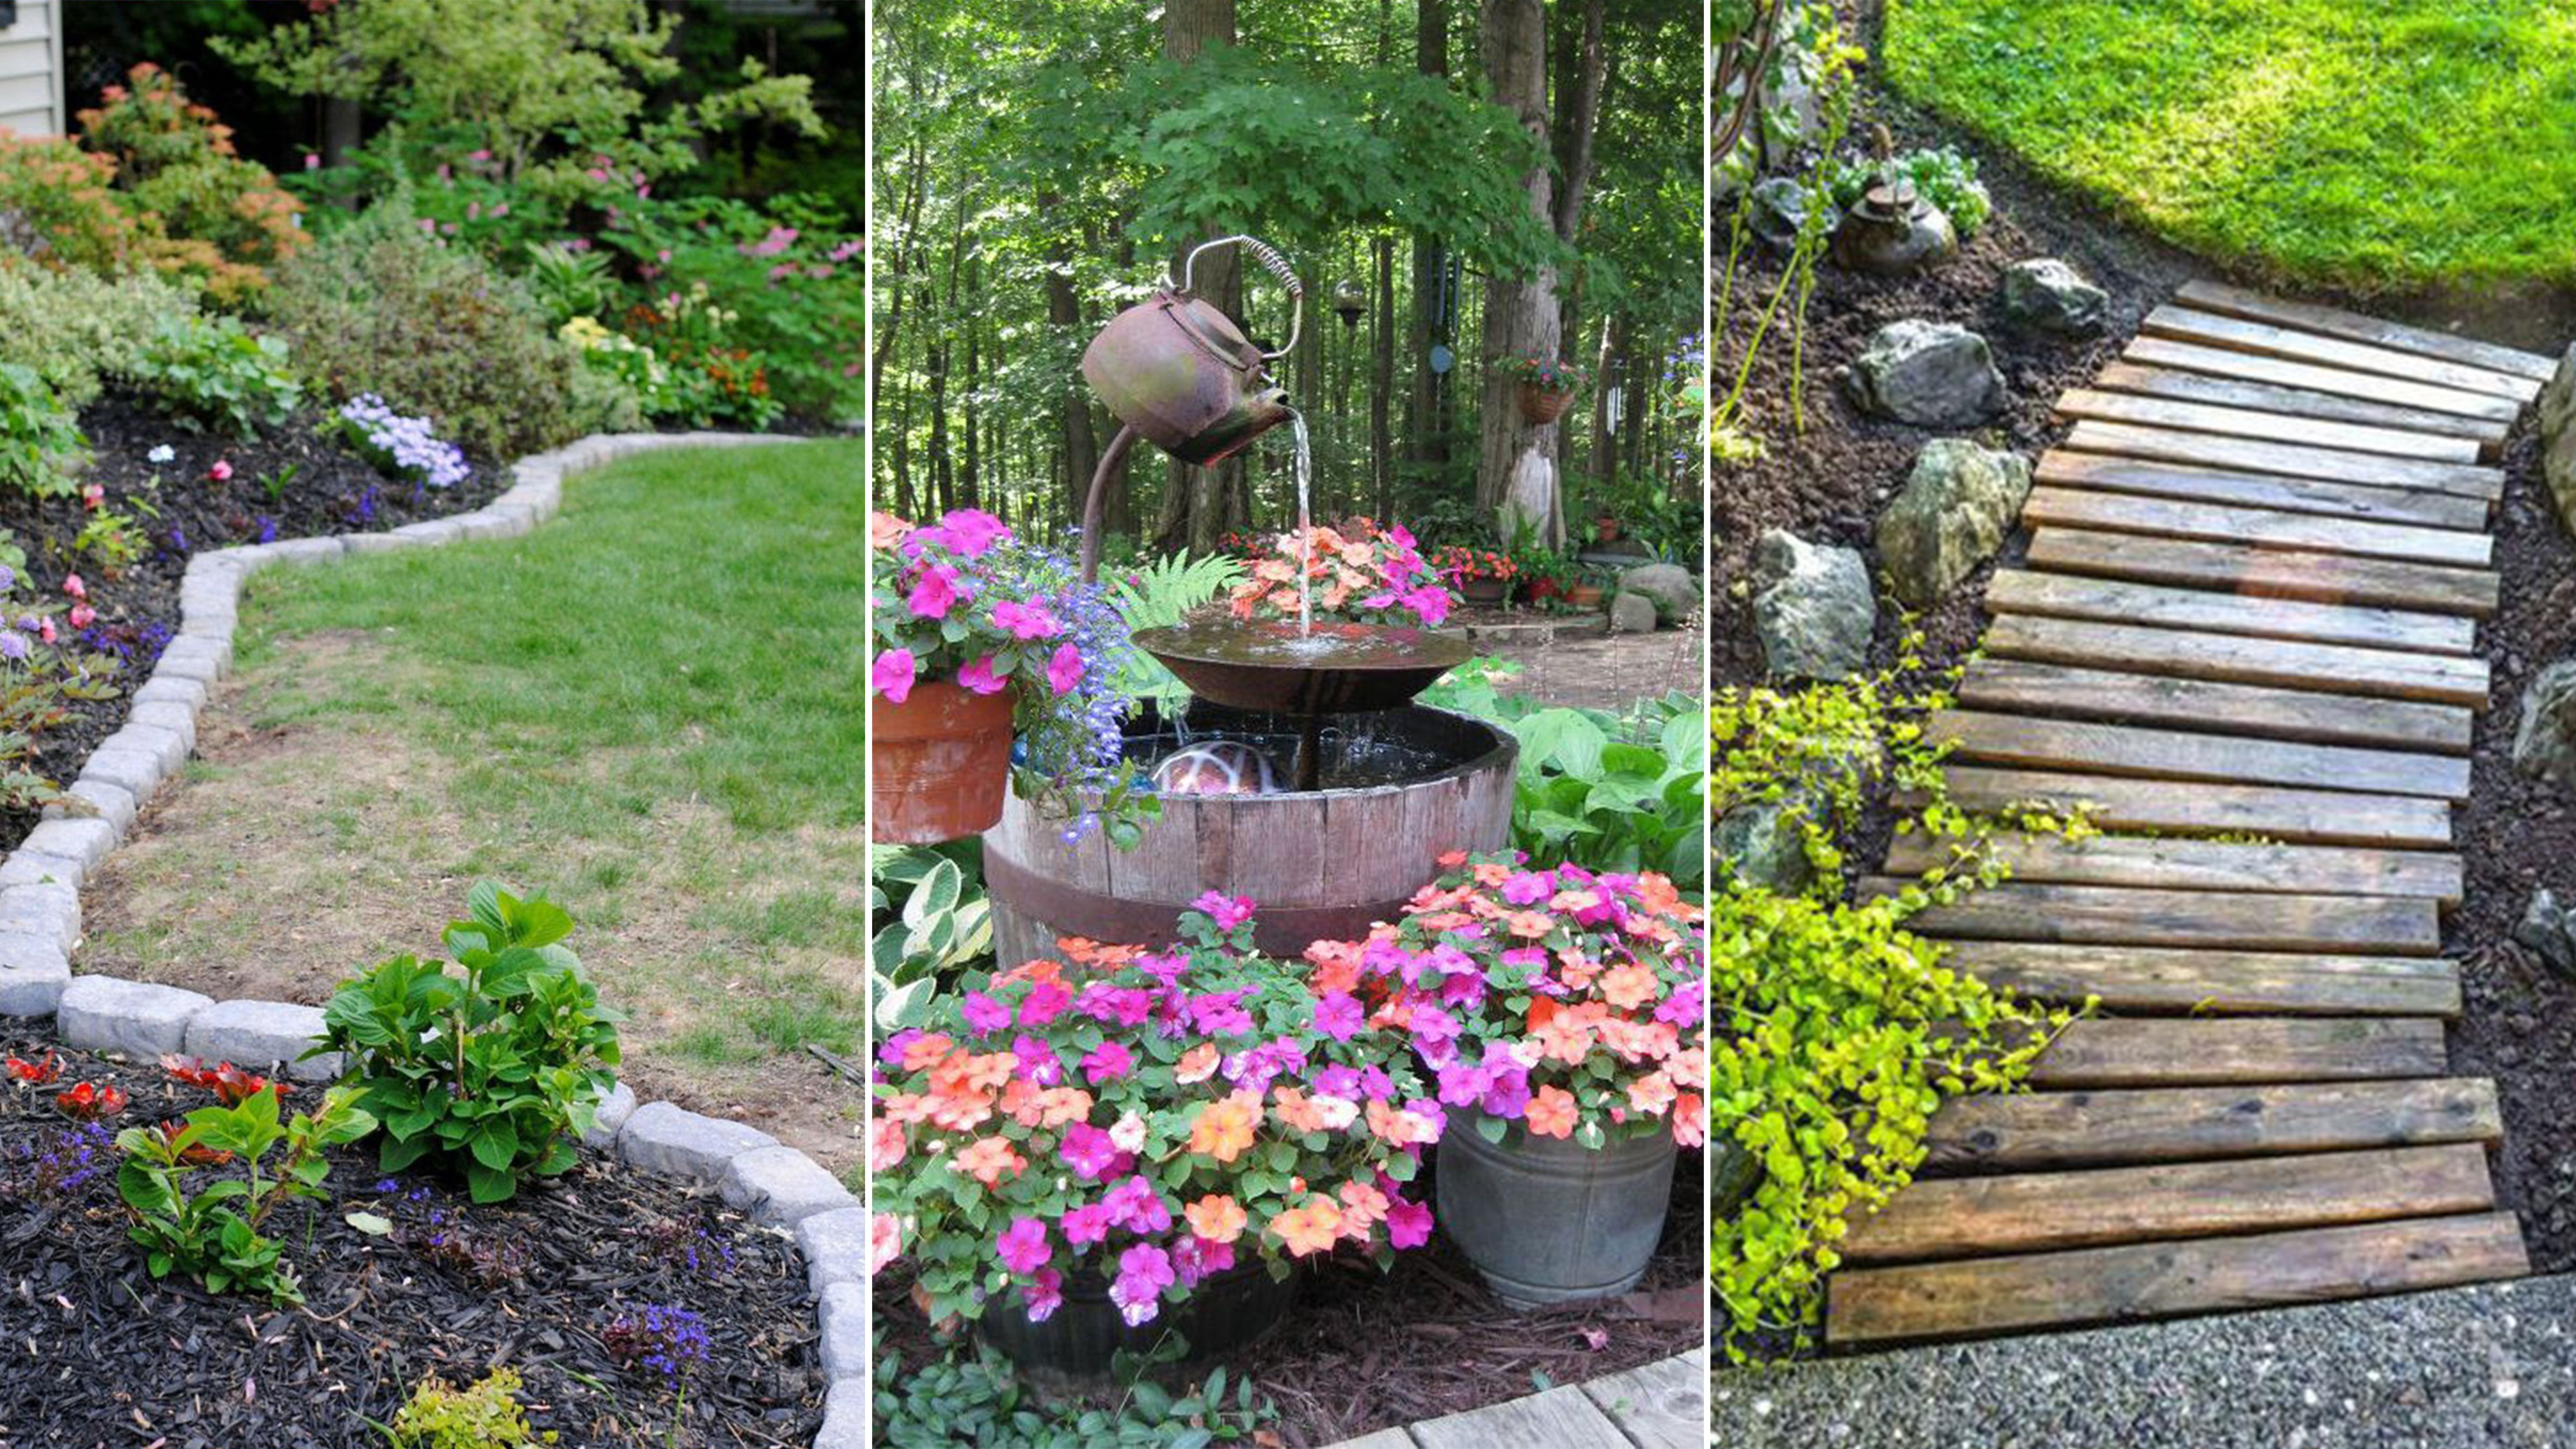 14 Cheap Landscaping Ideas - Budget-Friendly Landscape Tips for Front Yard and Backyard & 14 Cheap Landscaping Ideas - Budget-Friendly Landscape Tips for ...